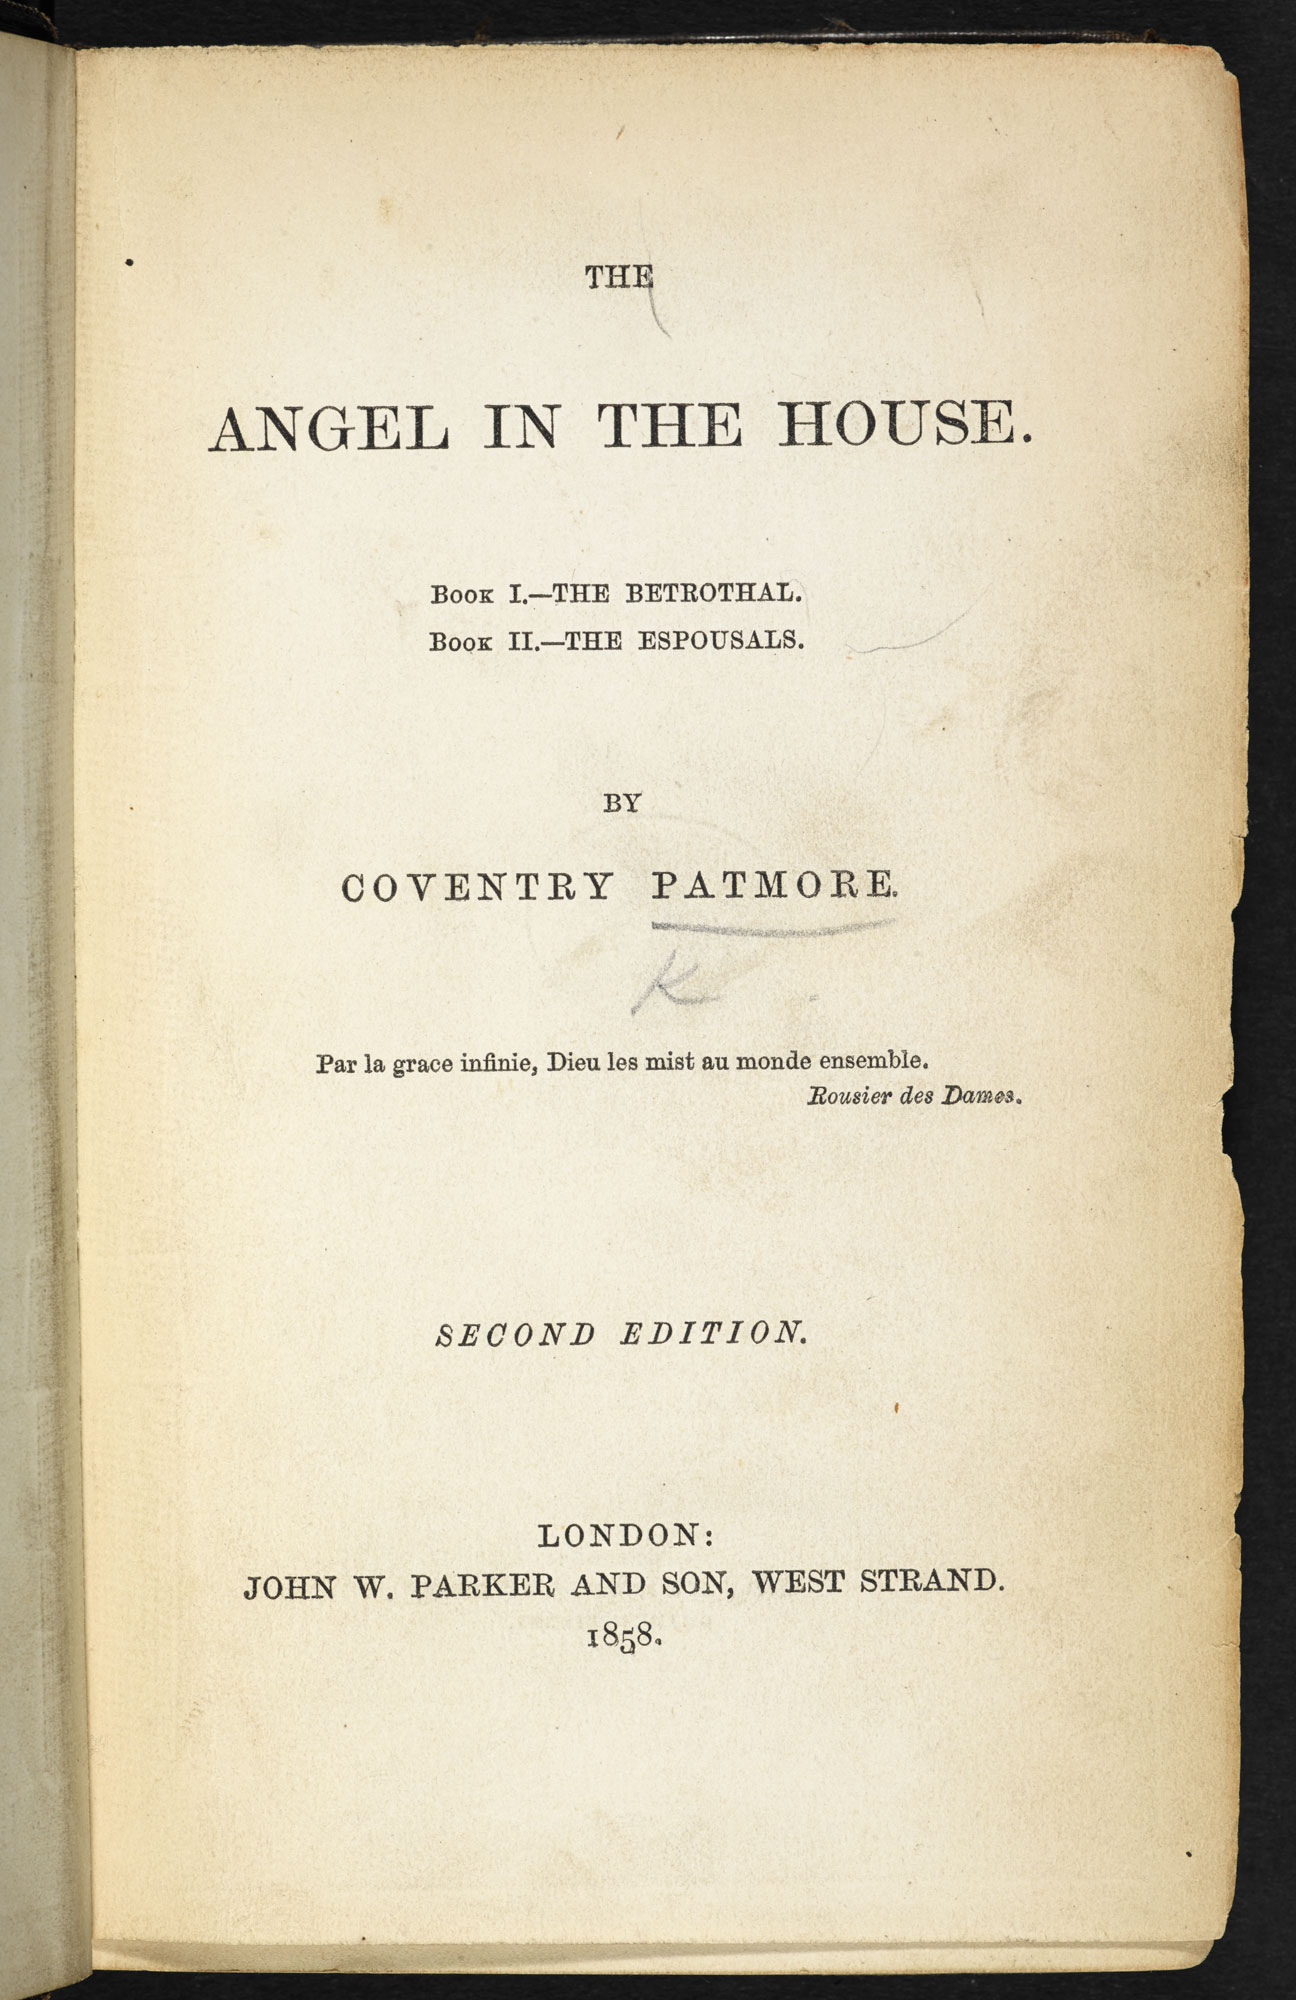 Coventry Patmore's poem, The Angel in the House [page: title page]